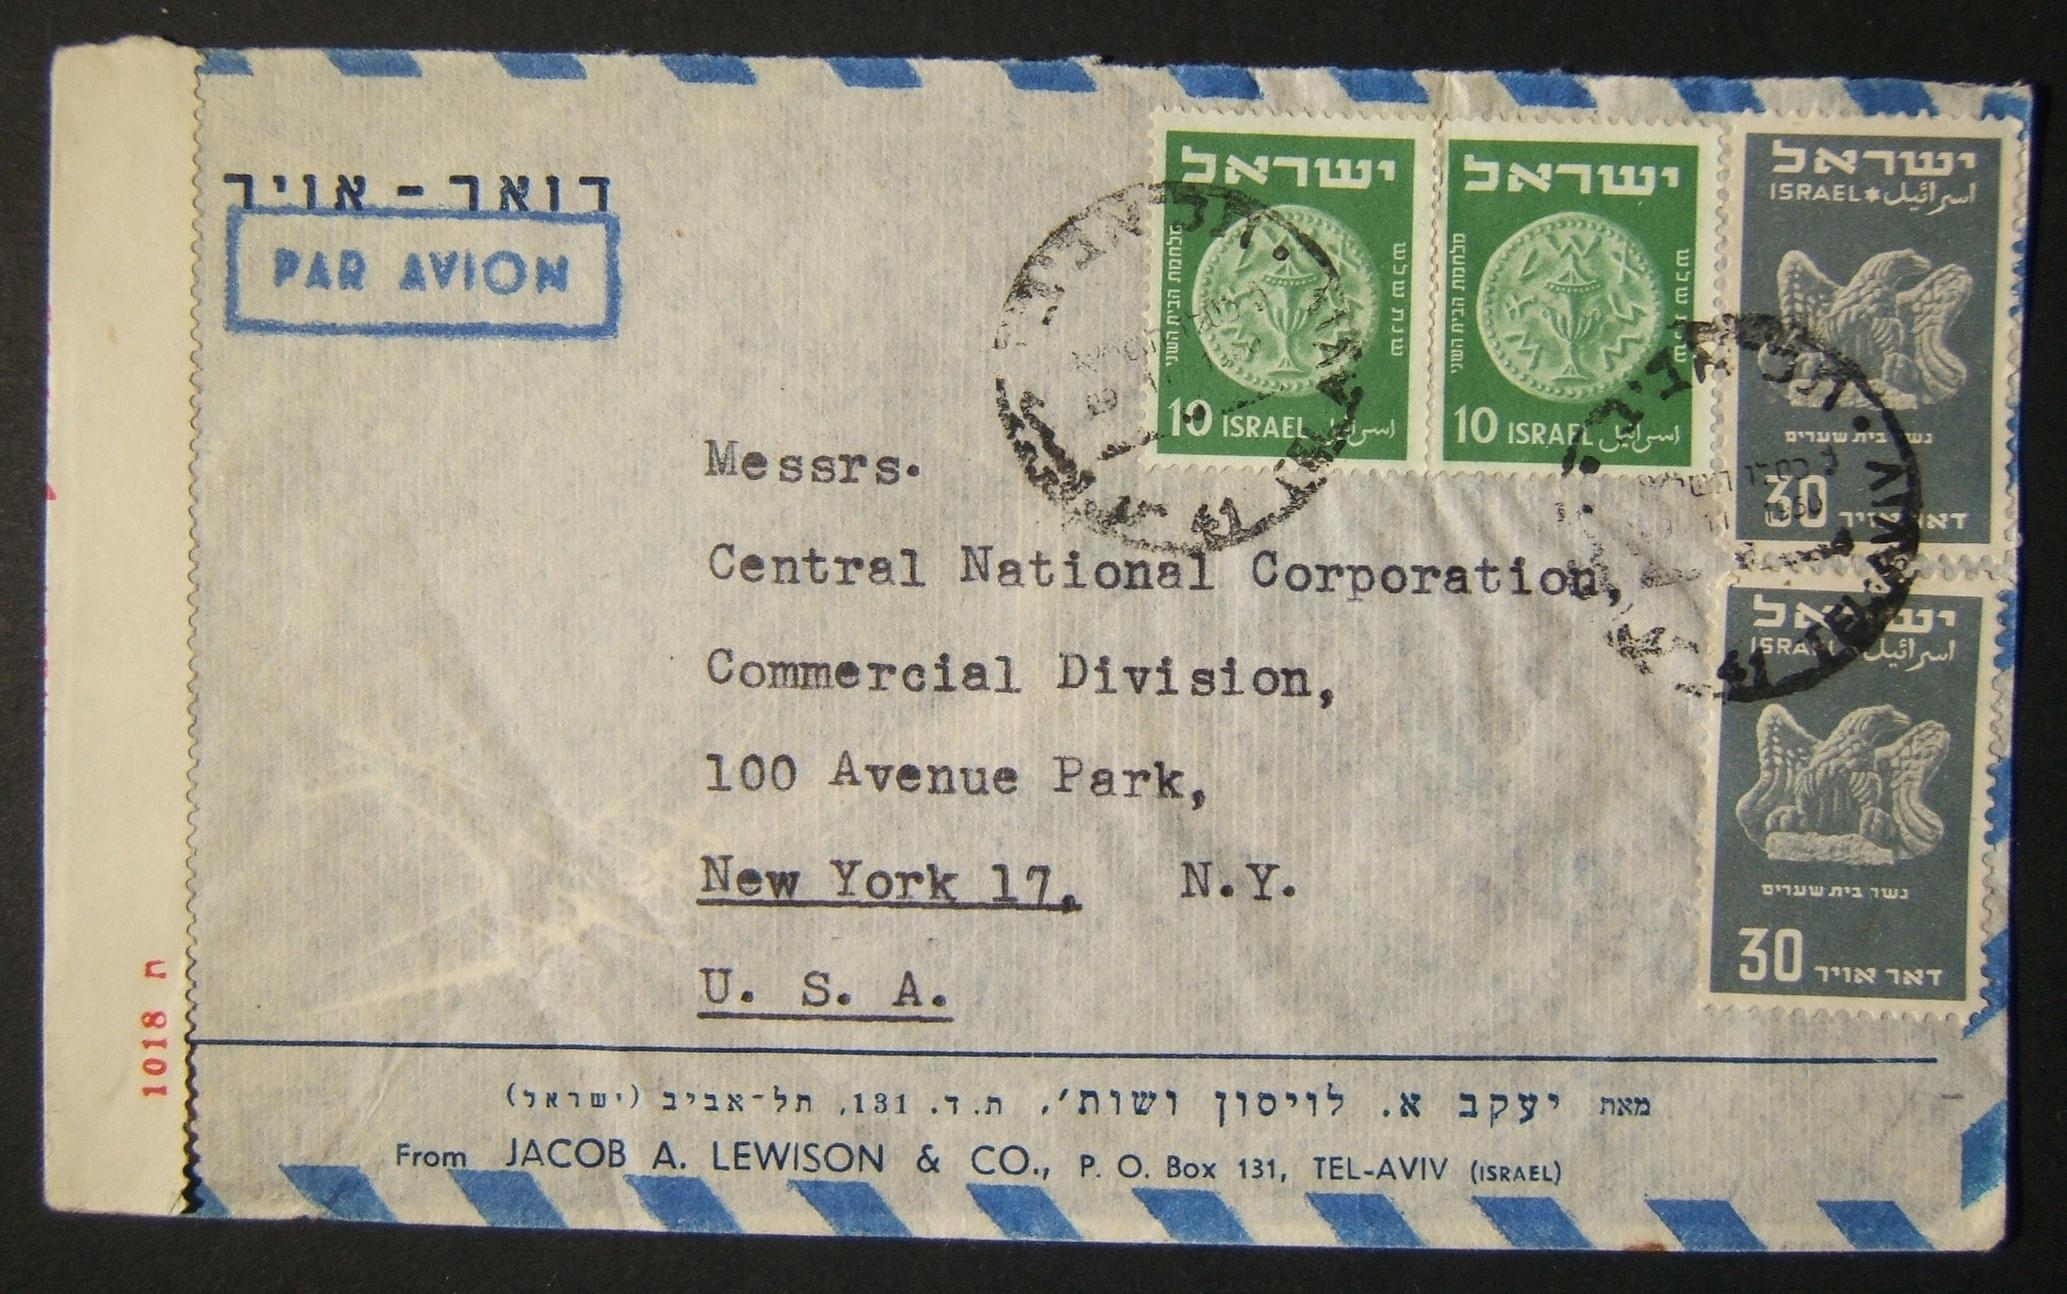 1950 1st airmail / PO's, rates & routes: 29-11-1950 business stationary commercial airmailed cover ex TLV to NYC franked 80pr at the FA-2a period rate using 2x 30pr (Ba33) + 2x 10p